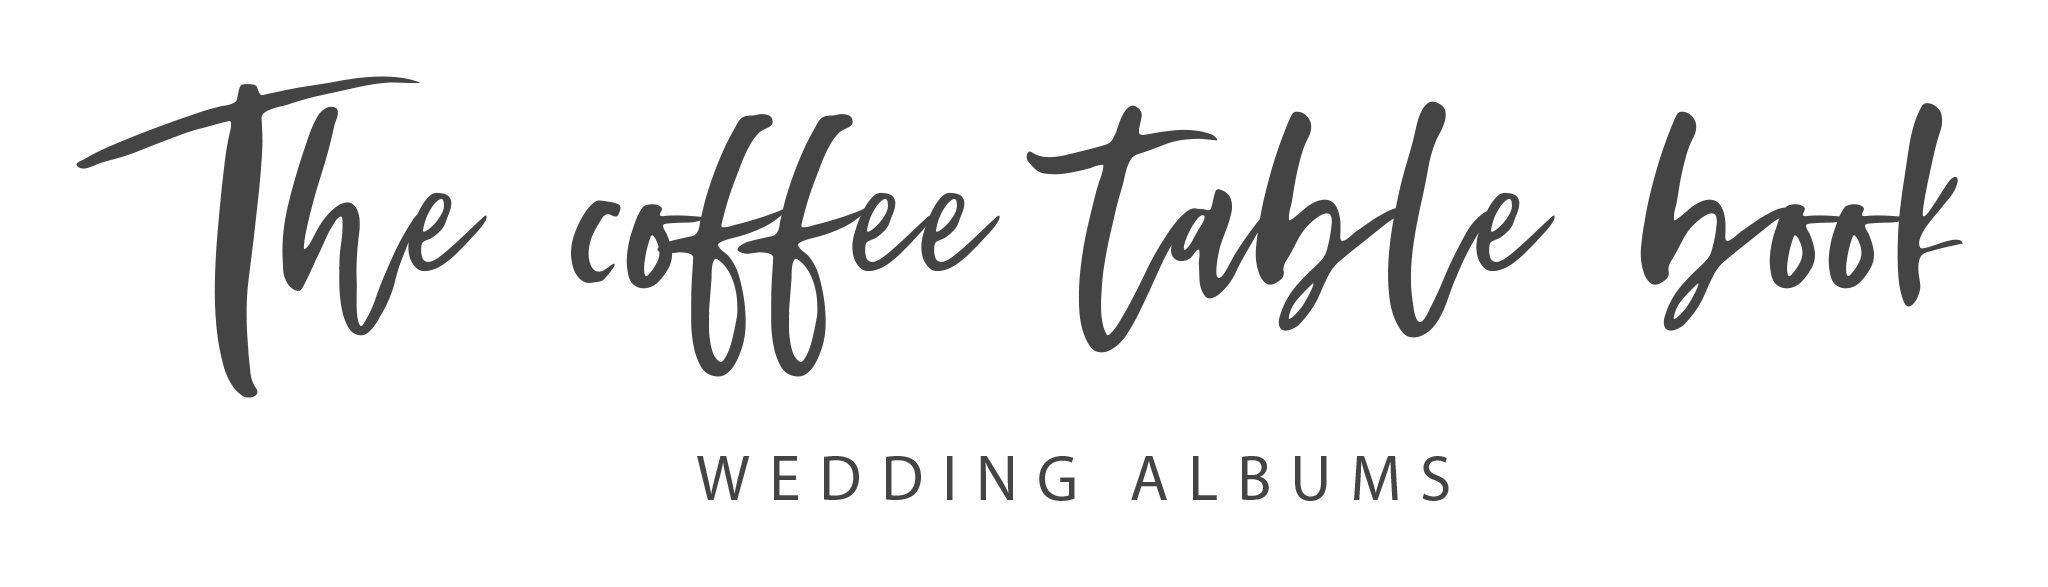 The Wedding Photo Album Shop